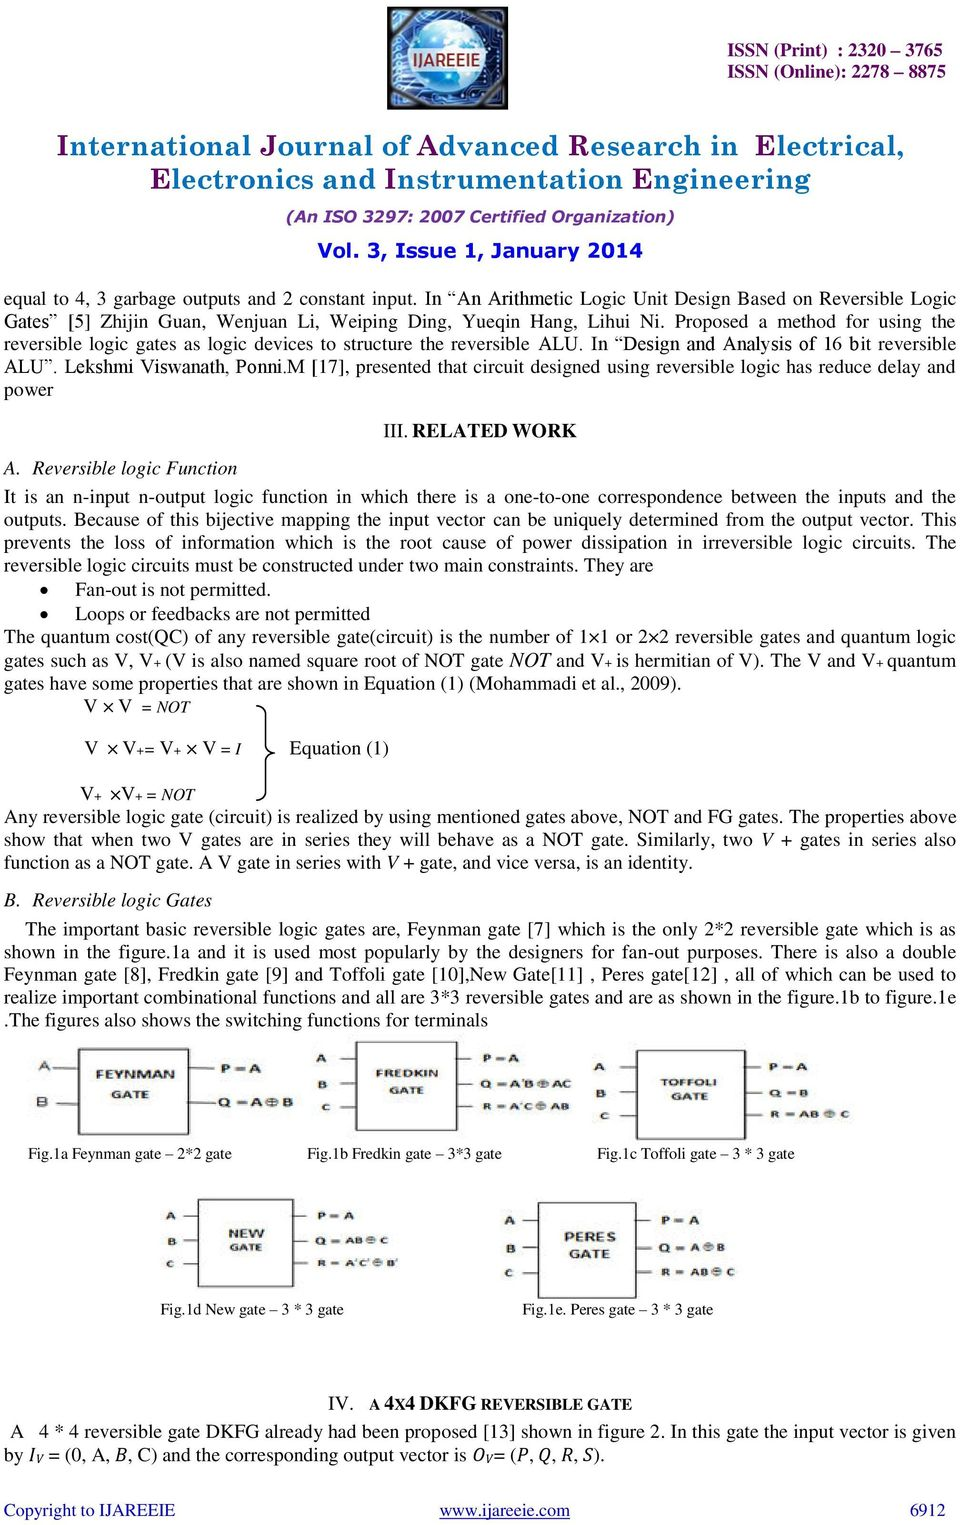 An Ease Implementation Of 4 Bit Arithmetic Circuit For 8 Operation Alu Logic Diagram M 17 Presented That Designed Using Reversible Has Reduce Delay And